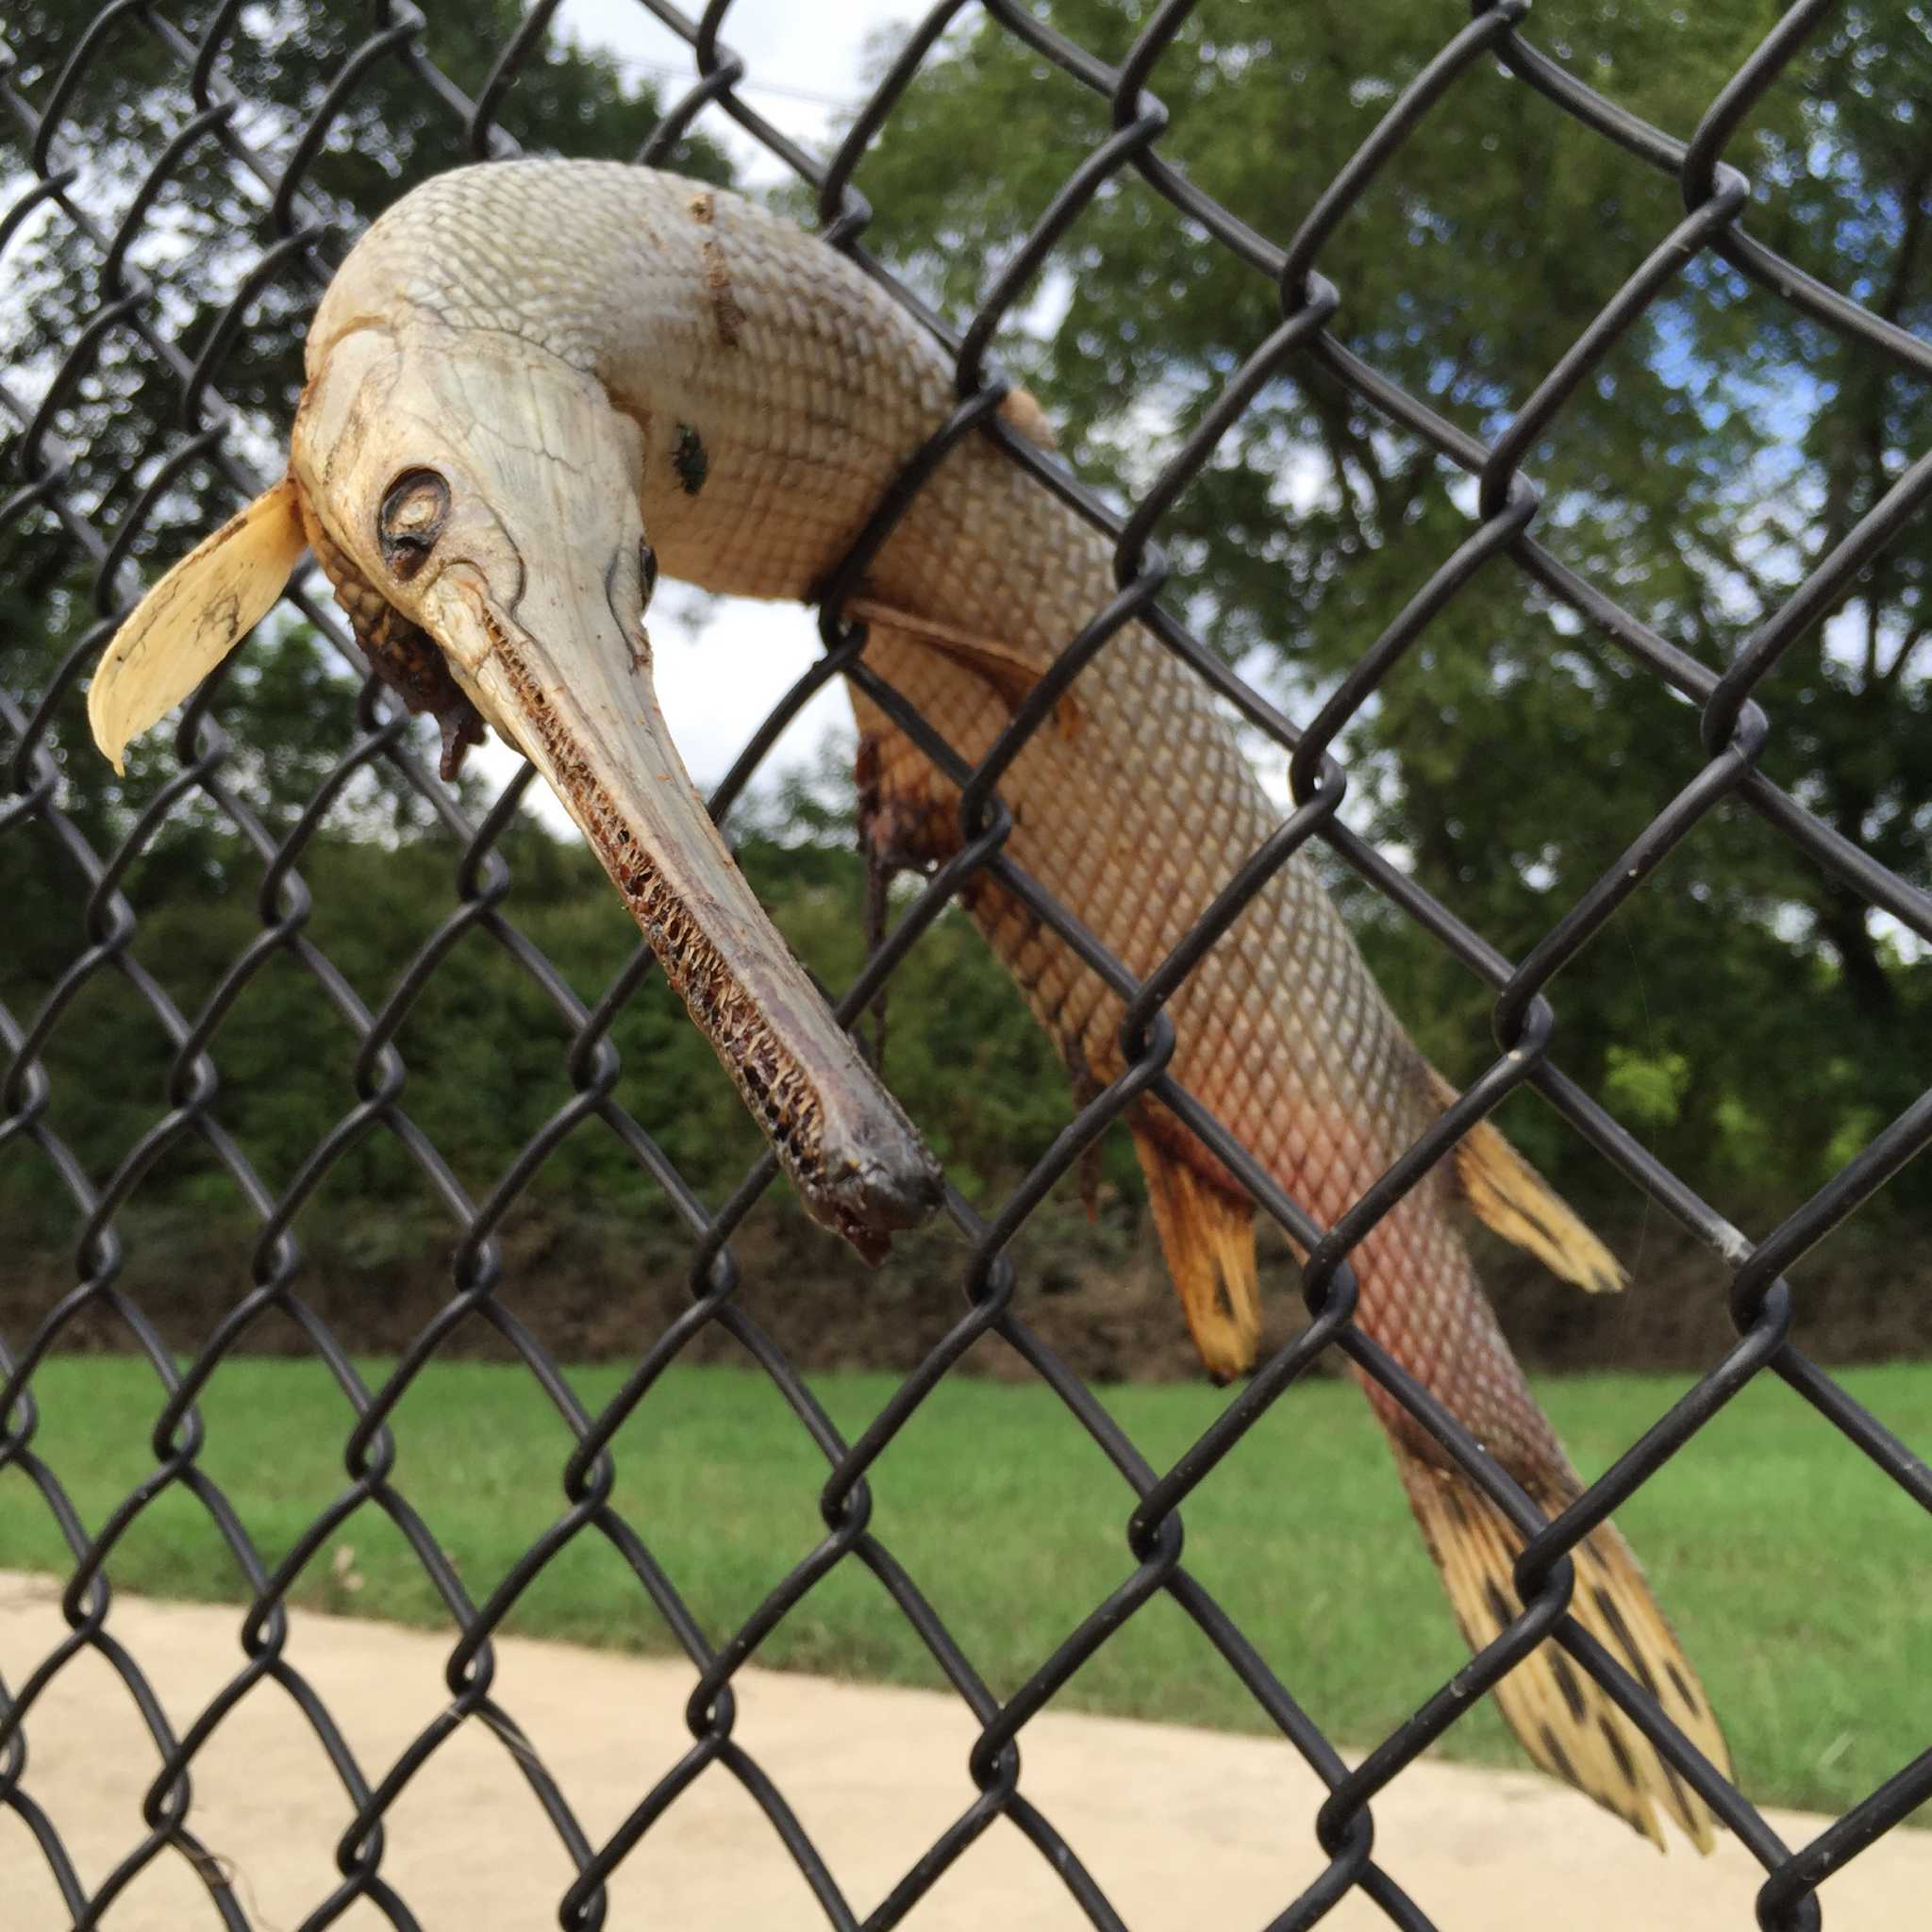 Crazy Photos Of Texas Longnose Gar Stuck In Fences That